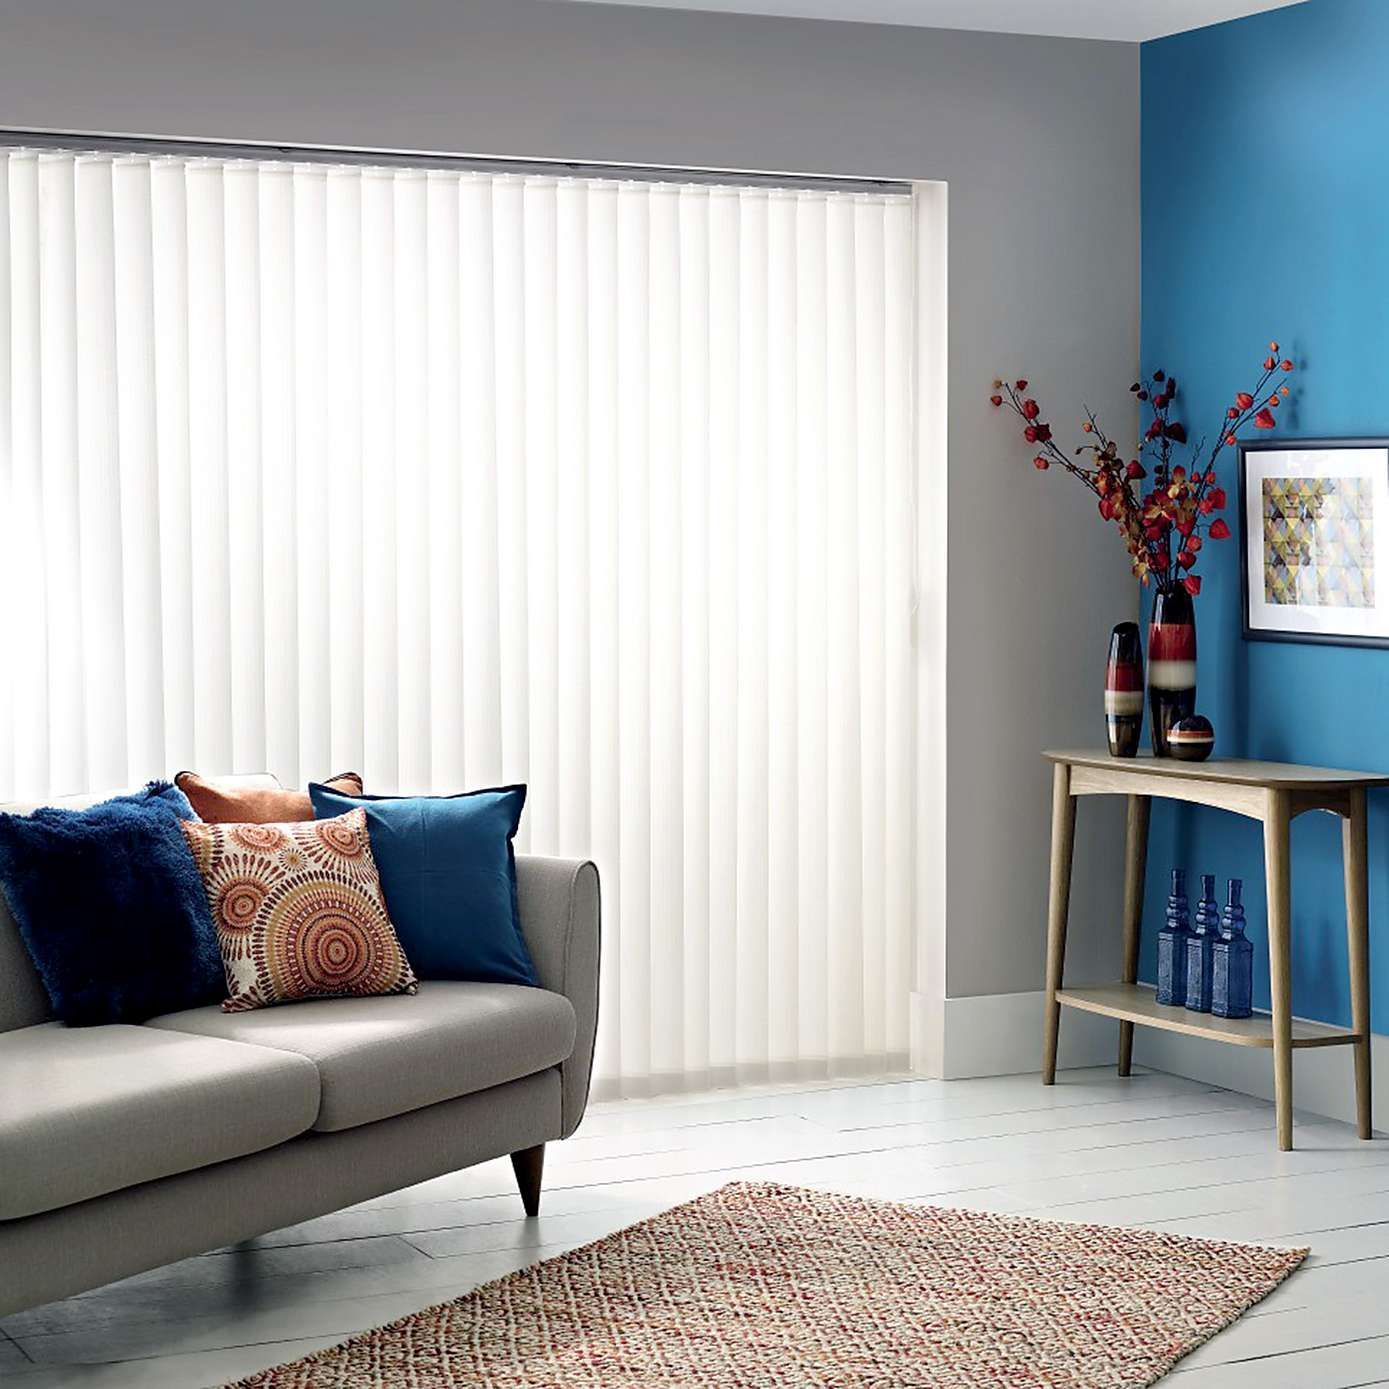 bathroom blinds dunelm | ideas | Pinterest | Bathroom blinds